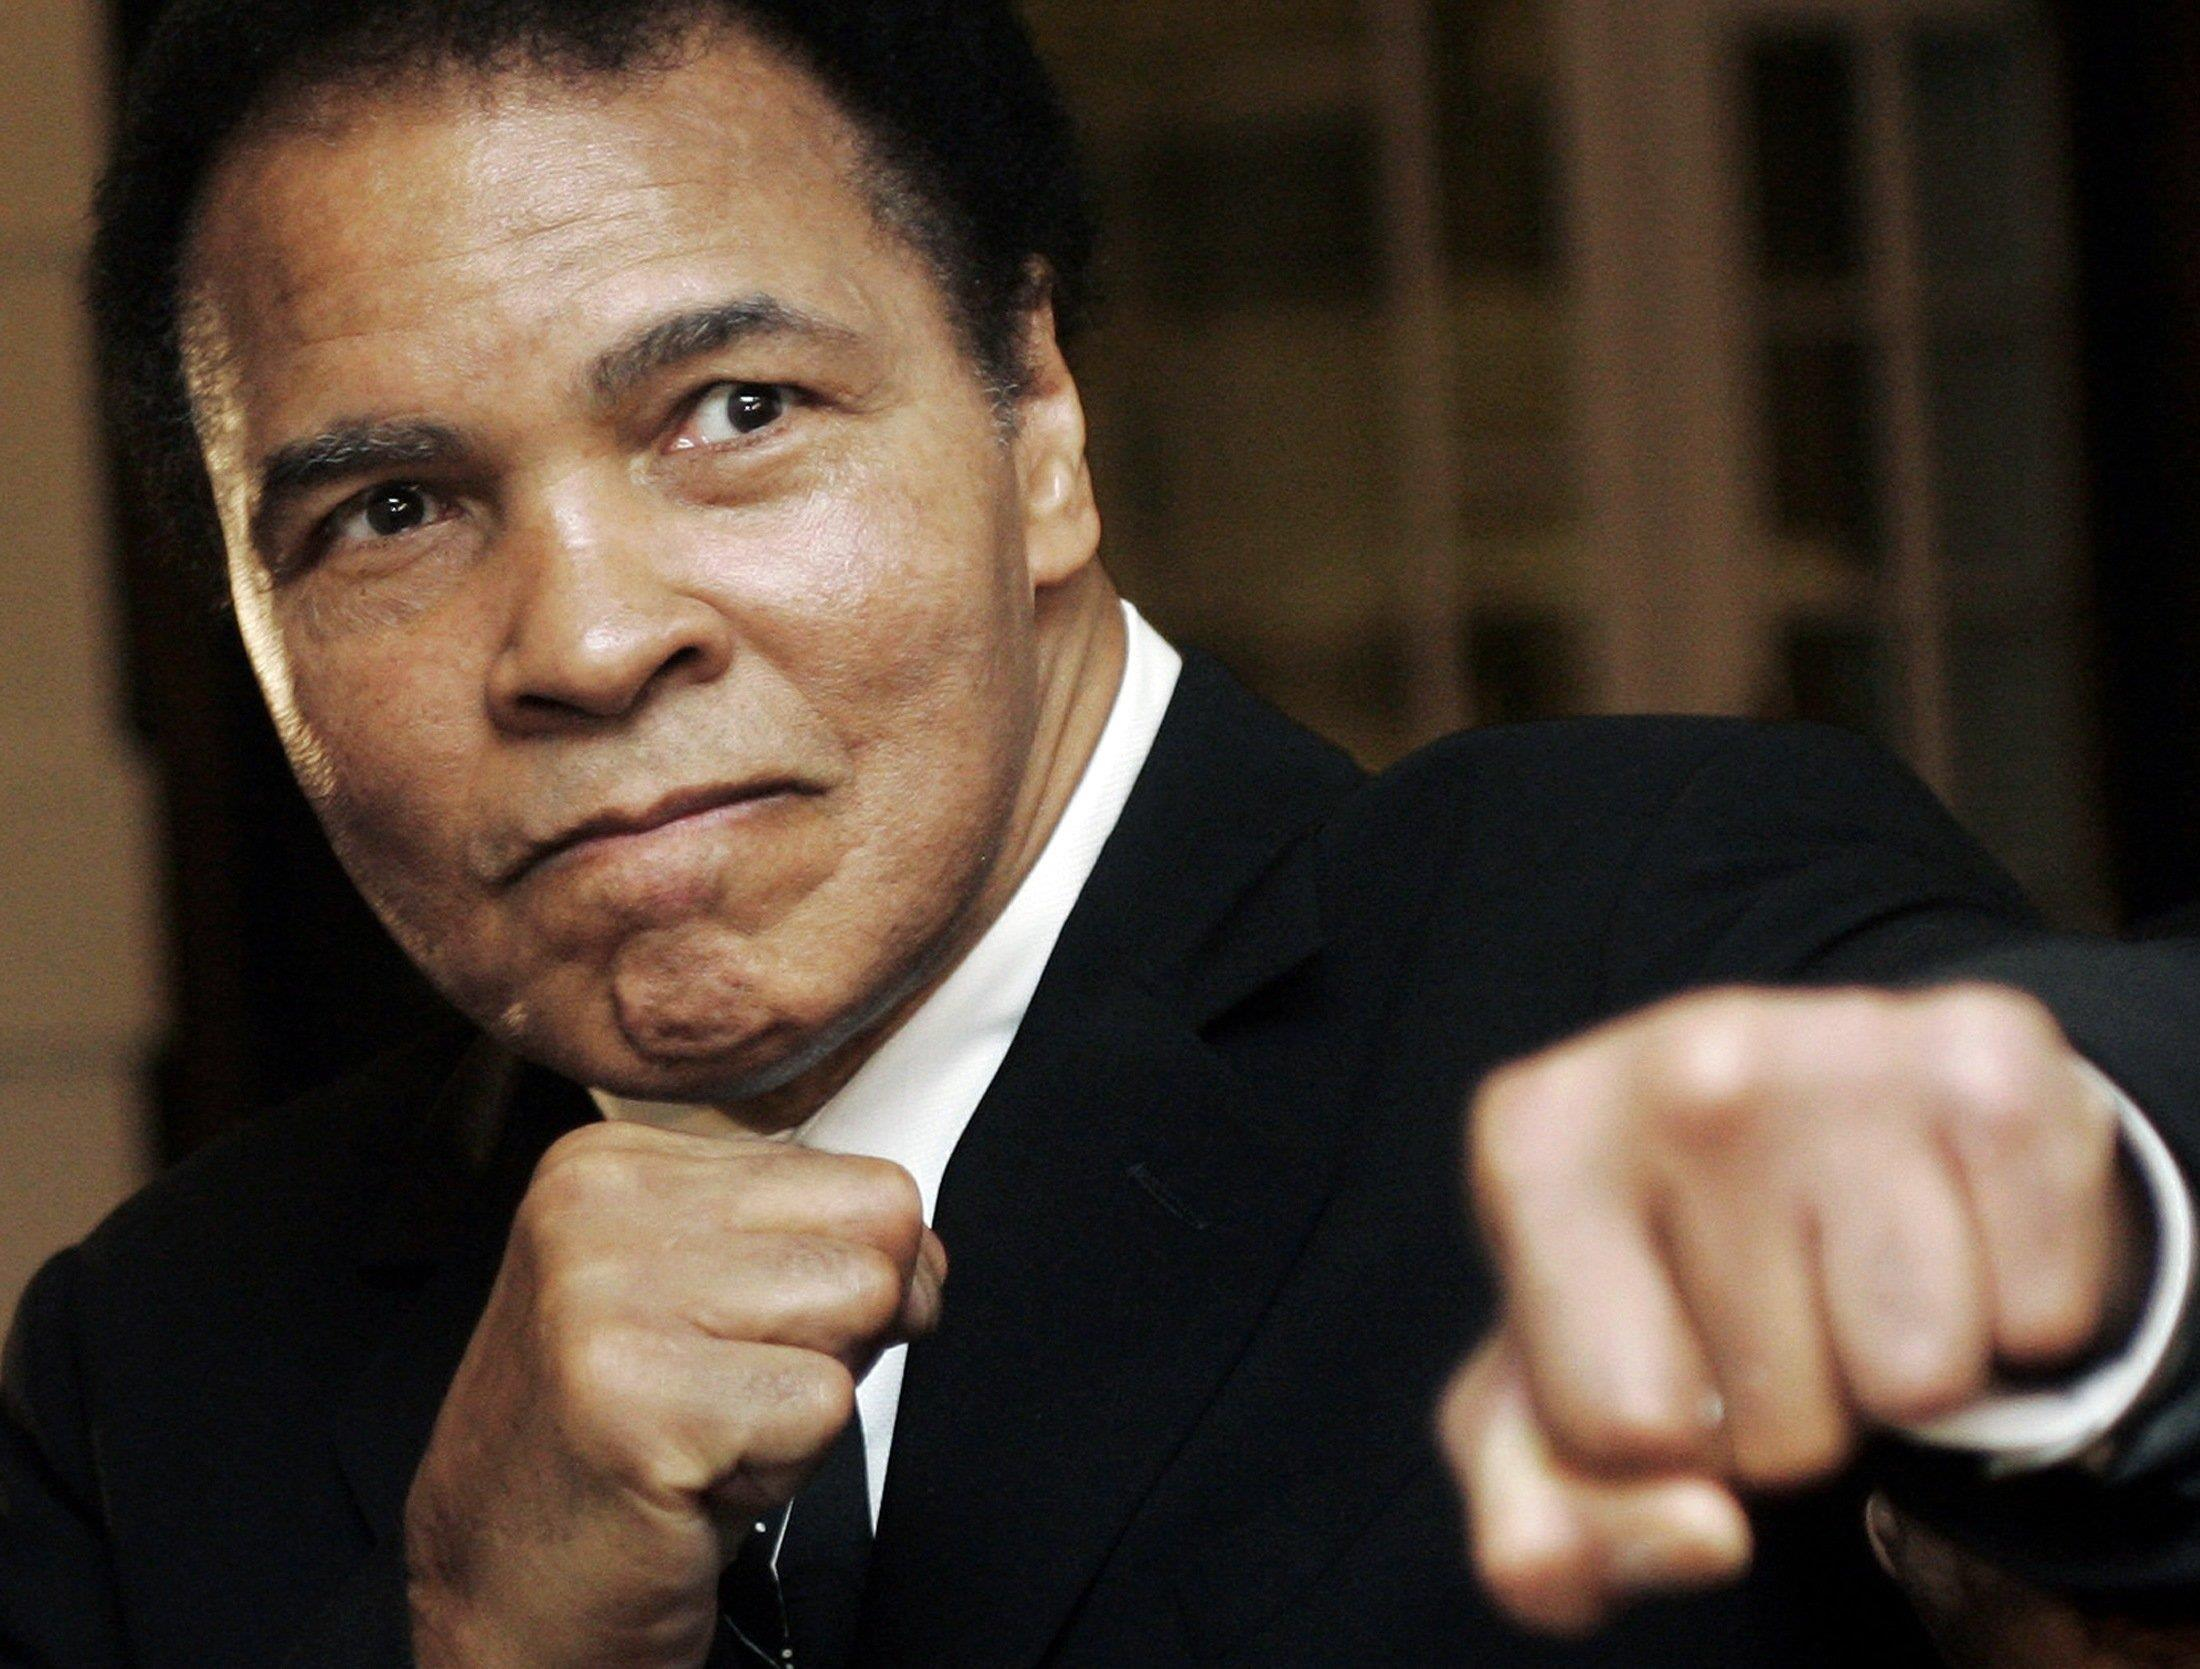 Muhammad Ali and Civil Rights Movement – II: Ali, 'The Greatest'